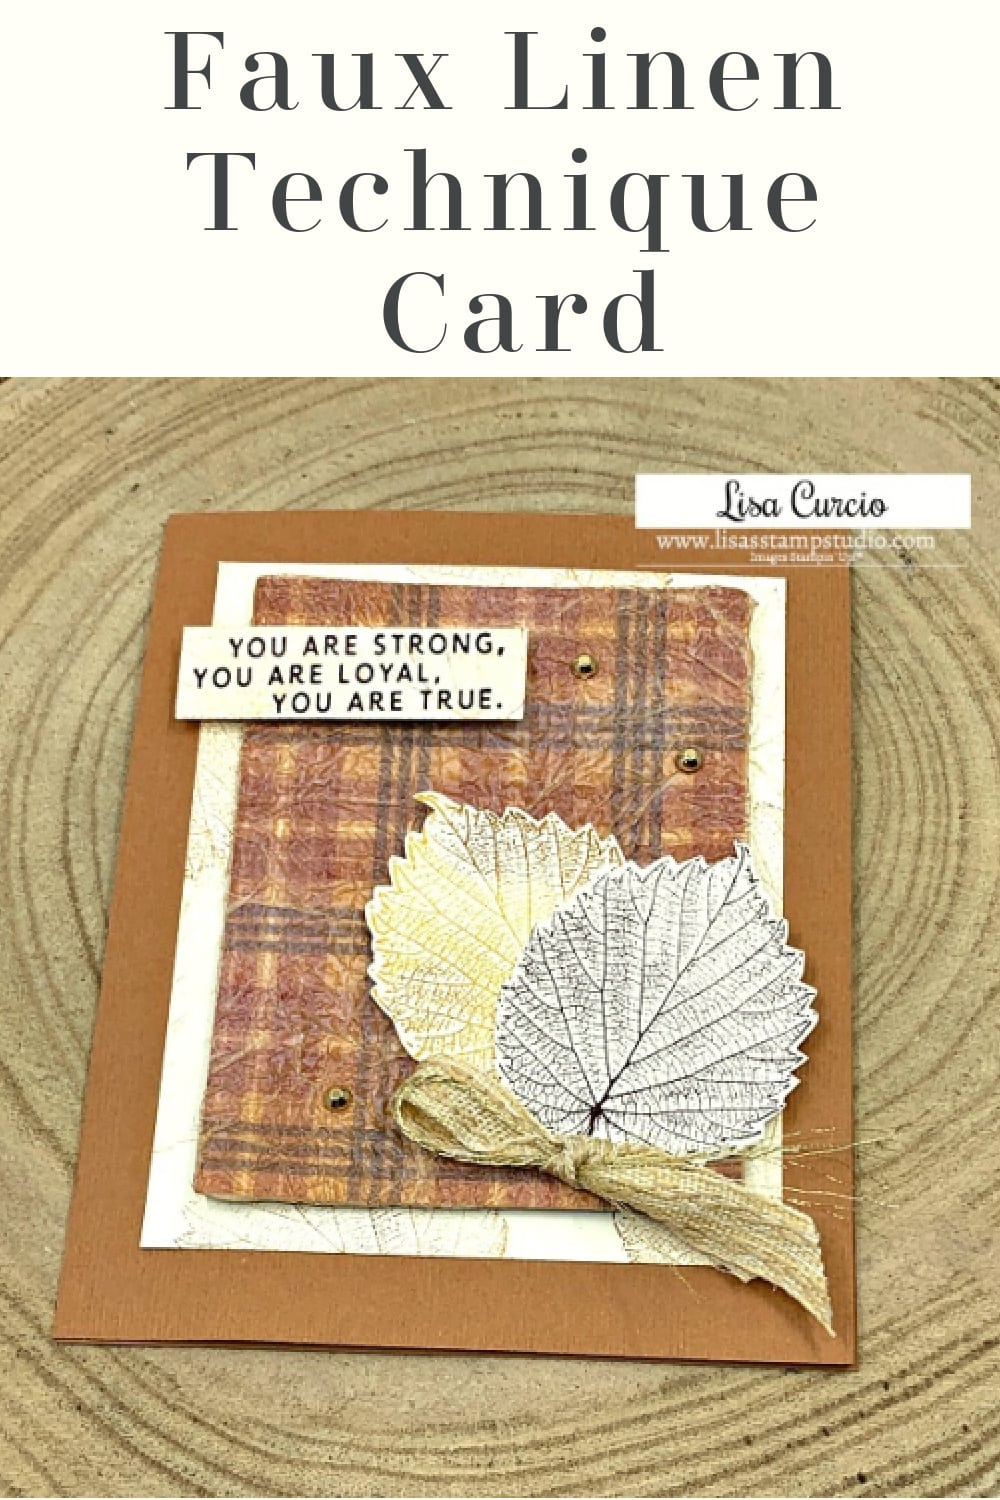 tissue-paper-on-diy-card-faux-linen-card-technique-stampin-up-loyal-leaves